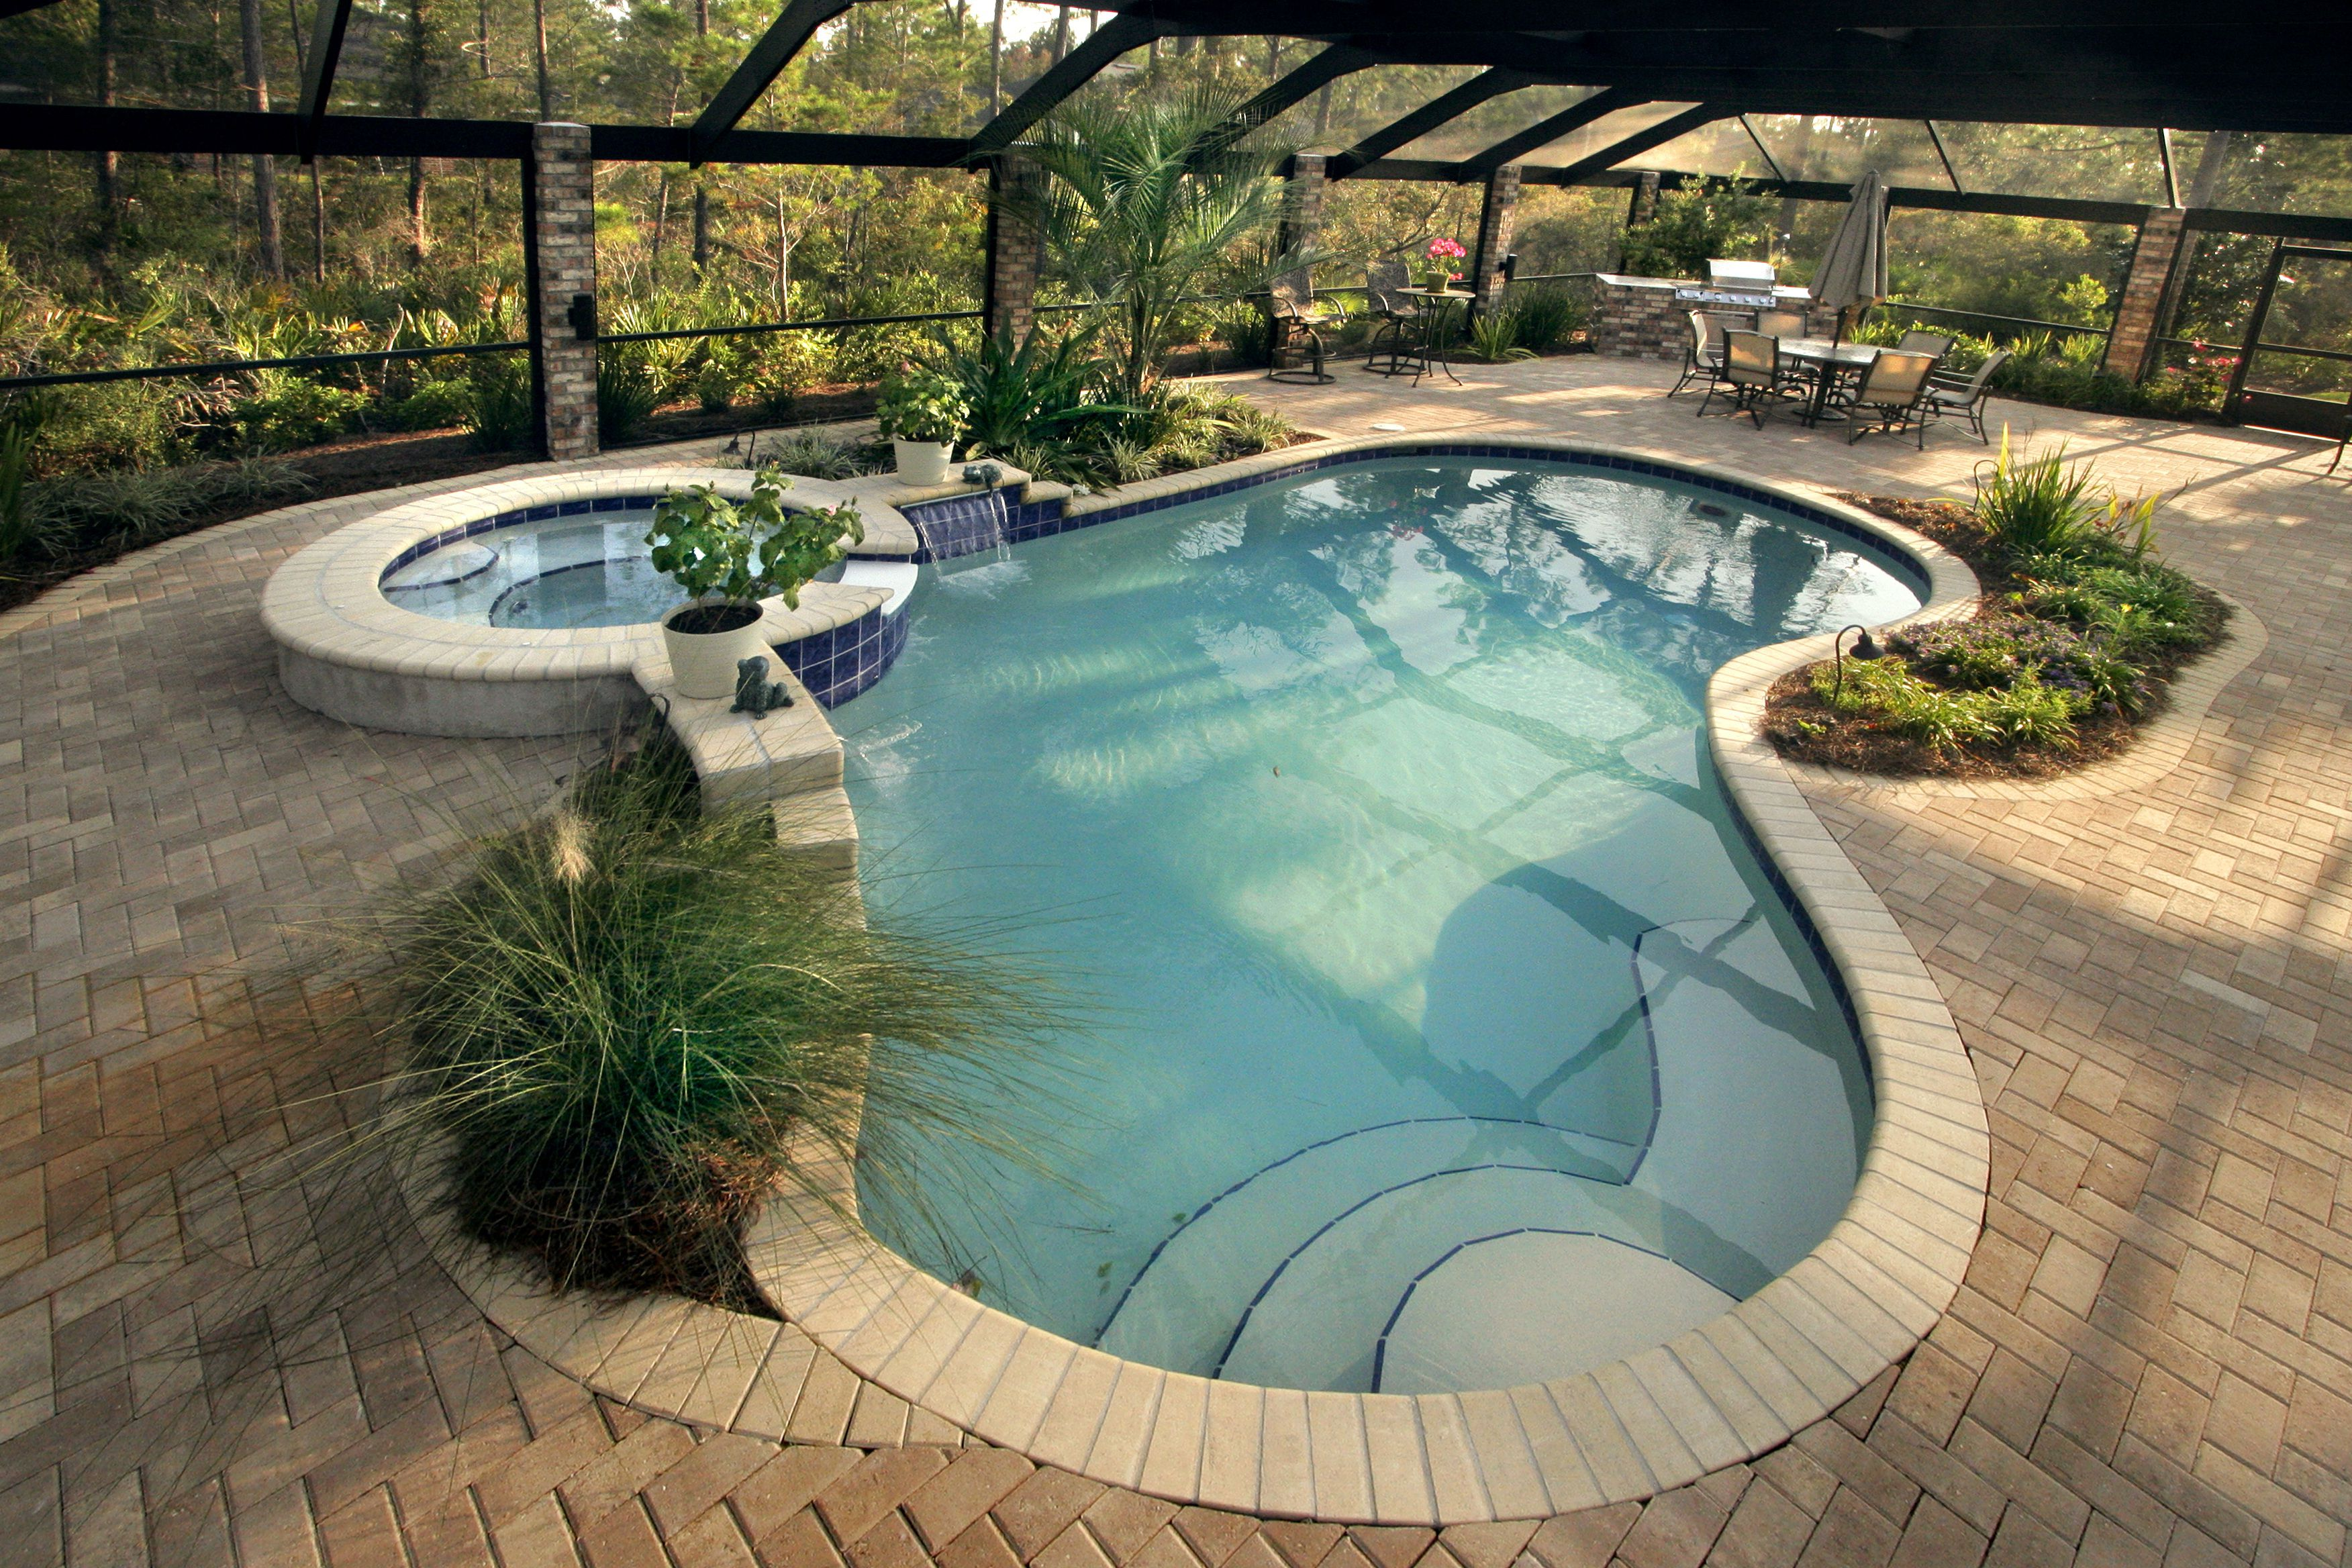 Pool Best Source Information Home Chic Small Roof Swimming Pool